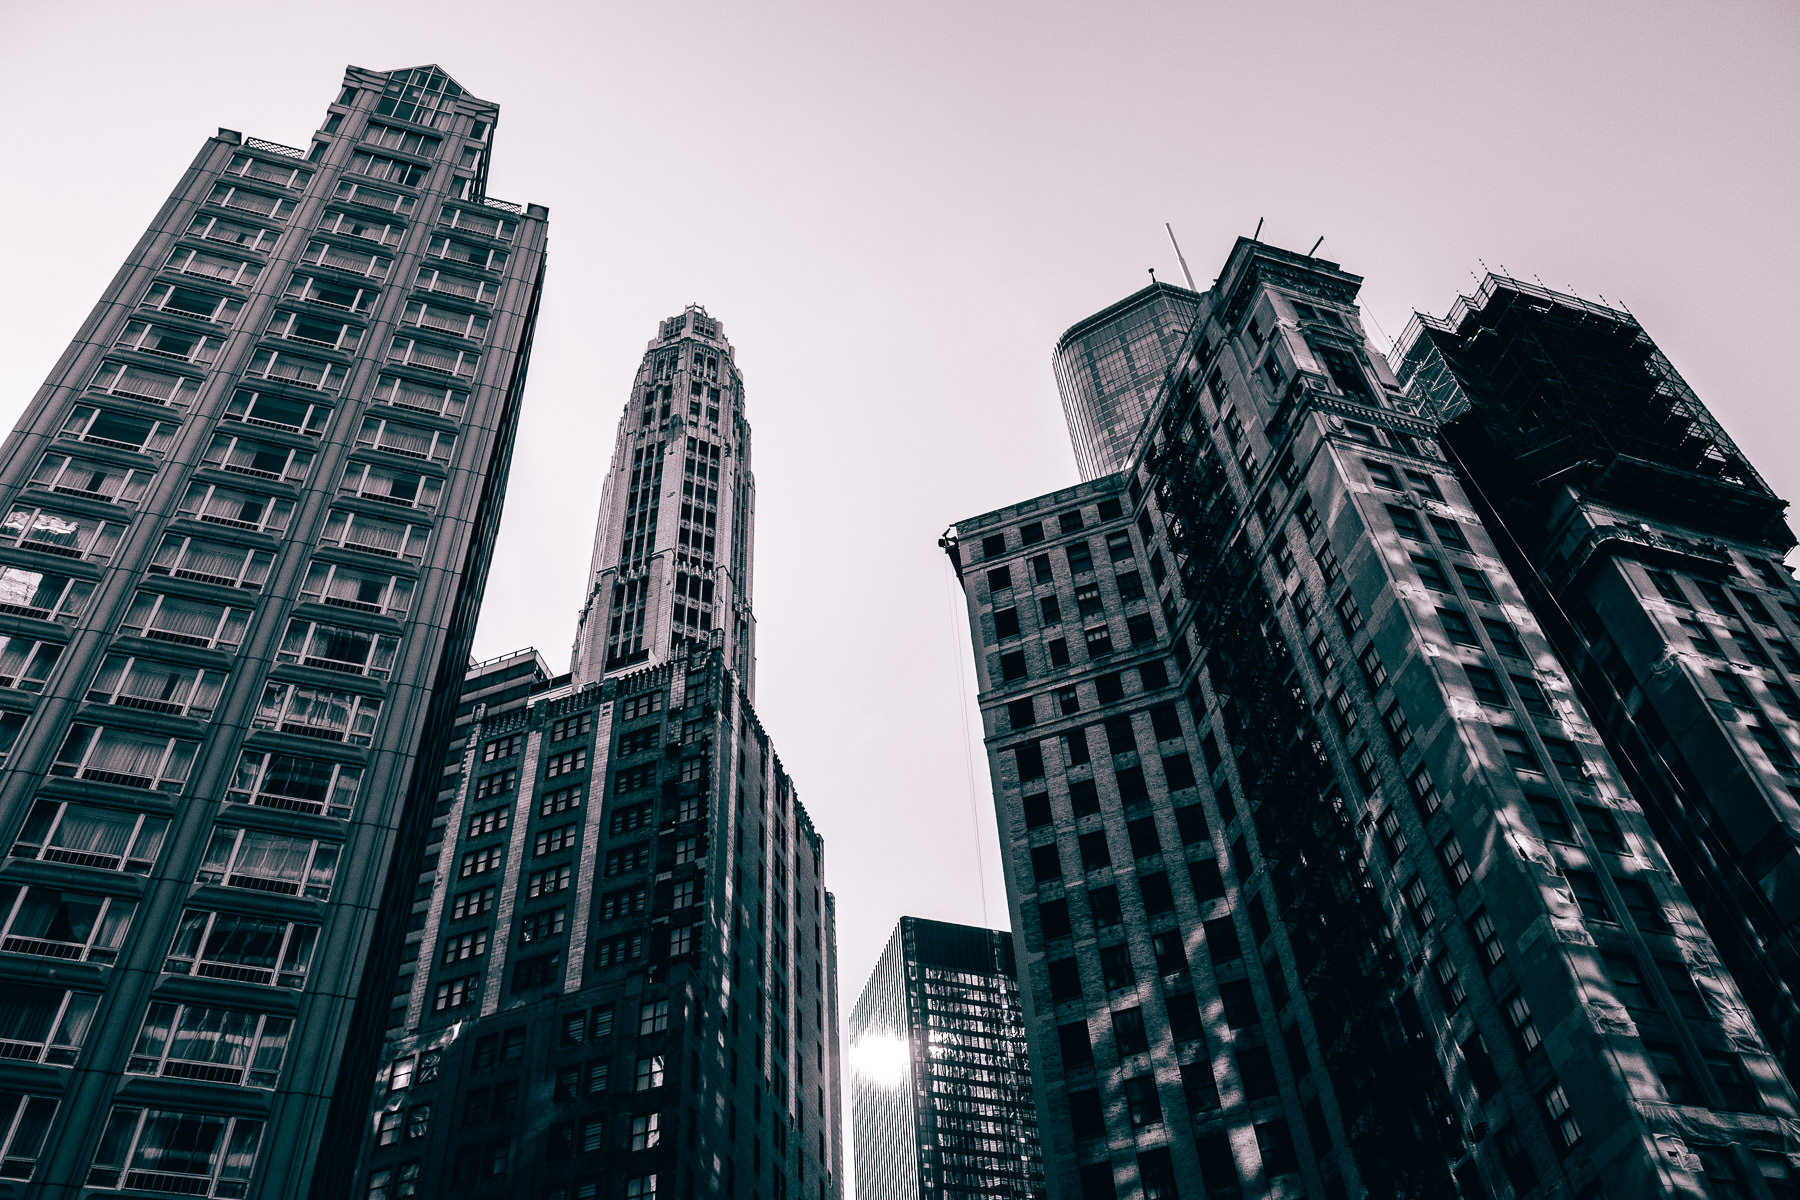 Old and modern skyscrapers rise into the sky over Chicago.